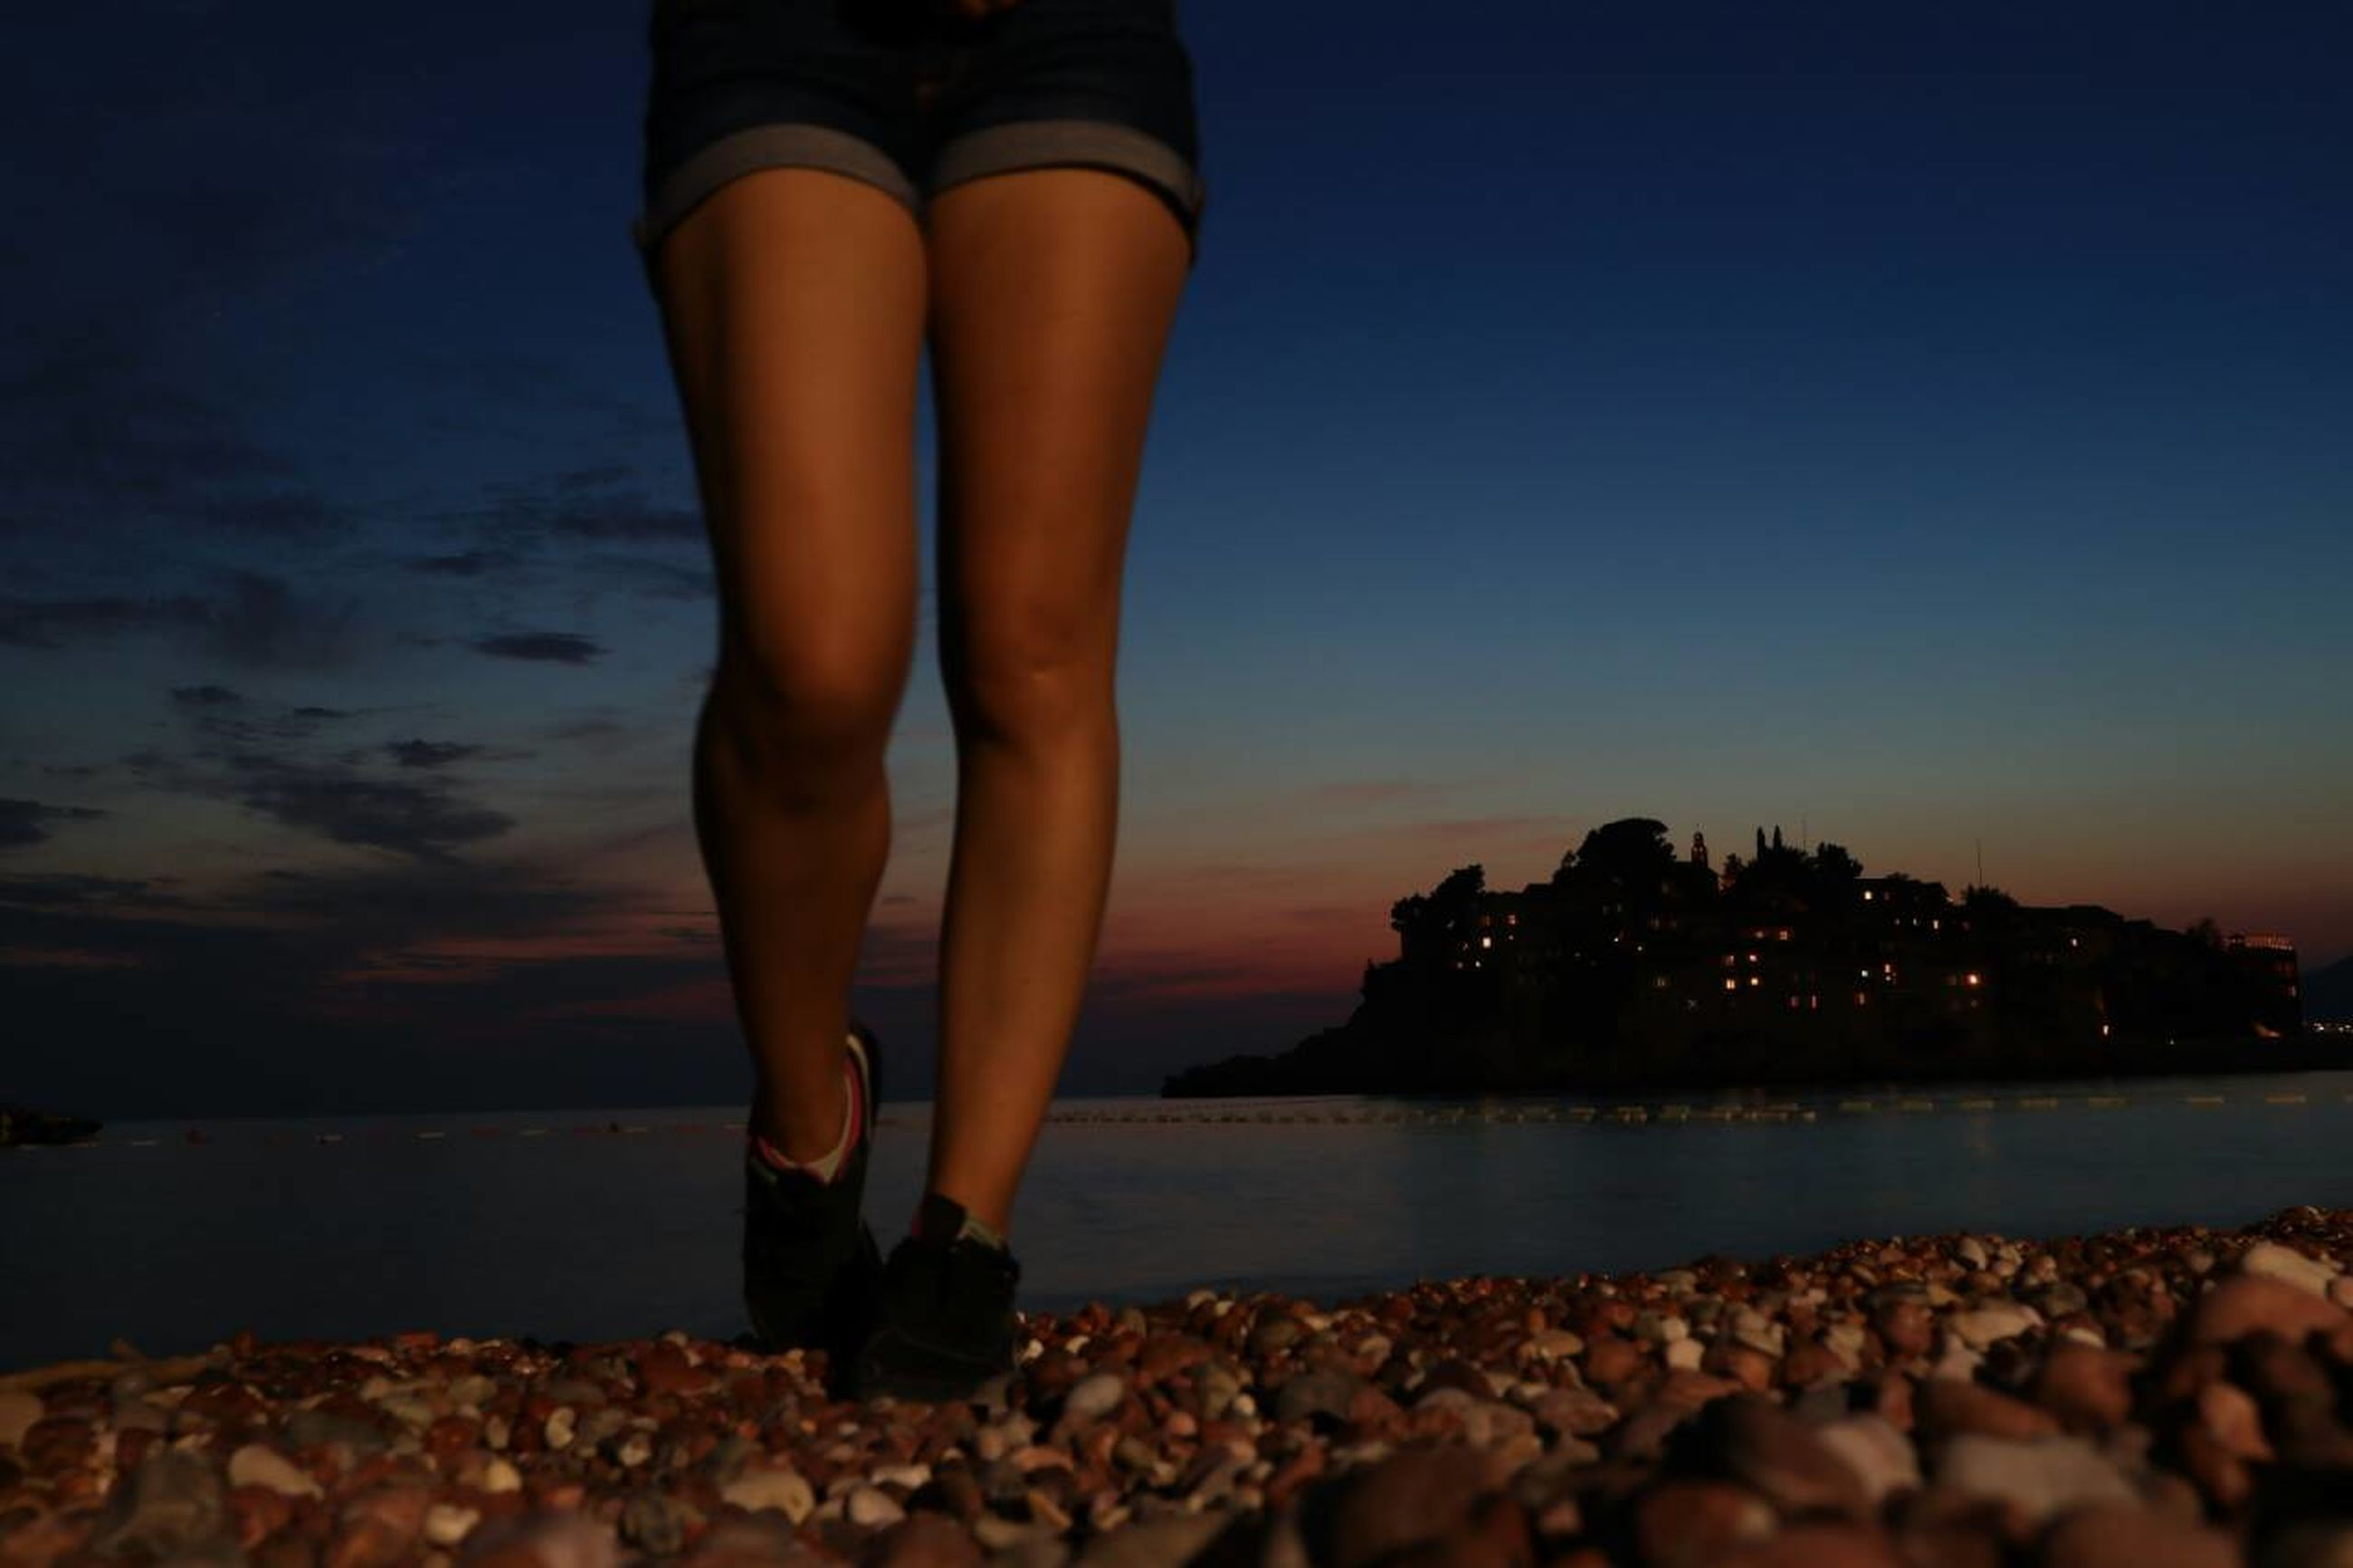 sky, one person, water, real people, human leg, lifestyles, low section, body part, human body part, nature, standing, adult, women, solid, rock, sunset, beach, leisure activity, pebble, human limb